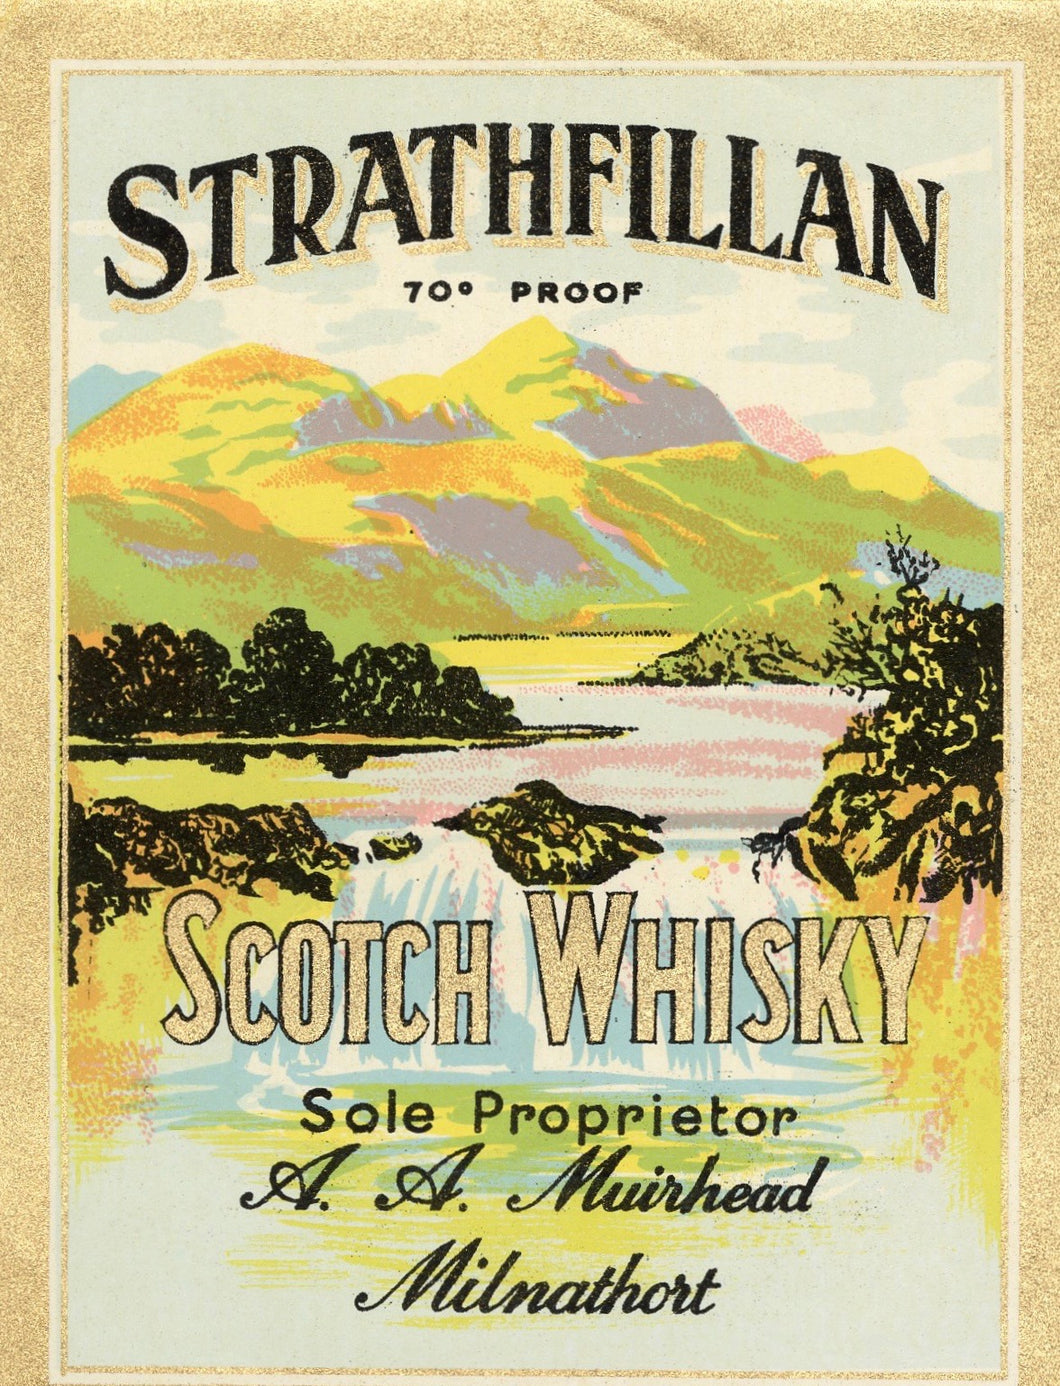 STRATHFILLAN SCOTCH WHISKY Label || Milnathort, A. A. Muirhead, Vintage